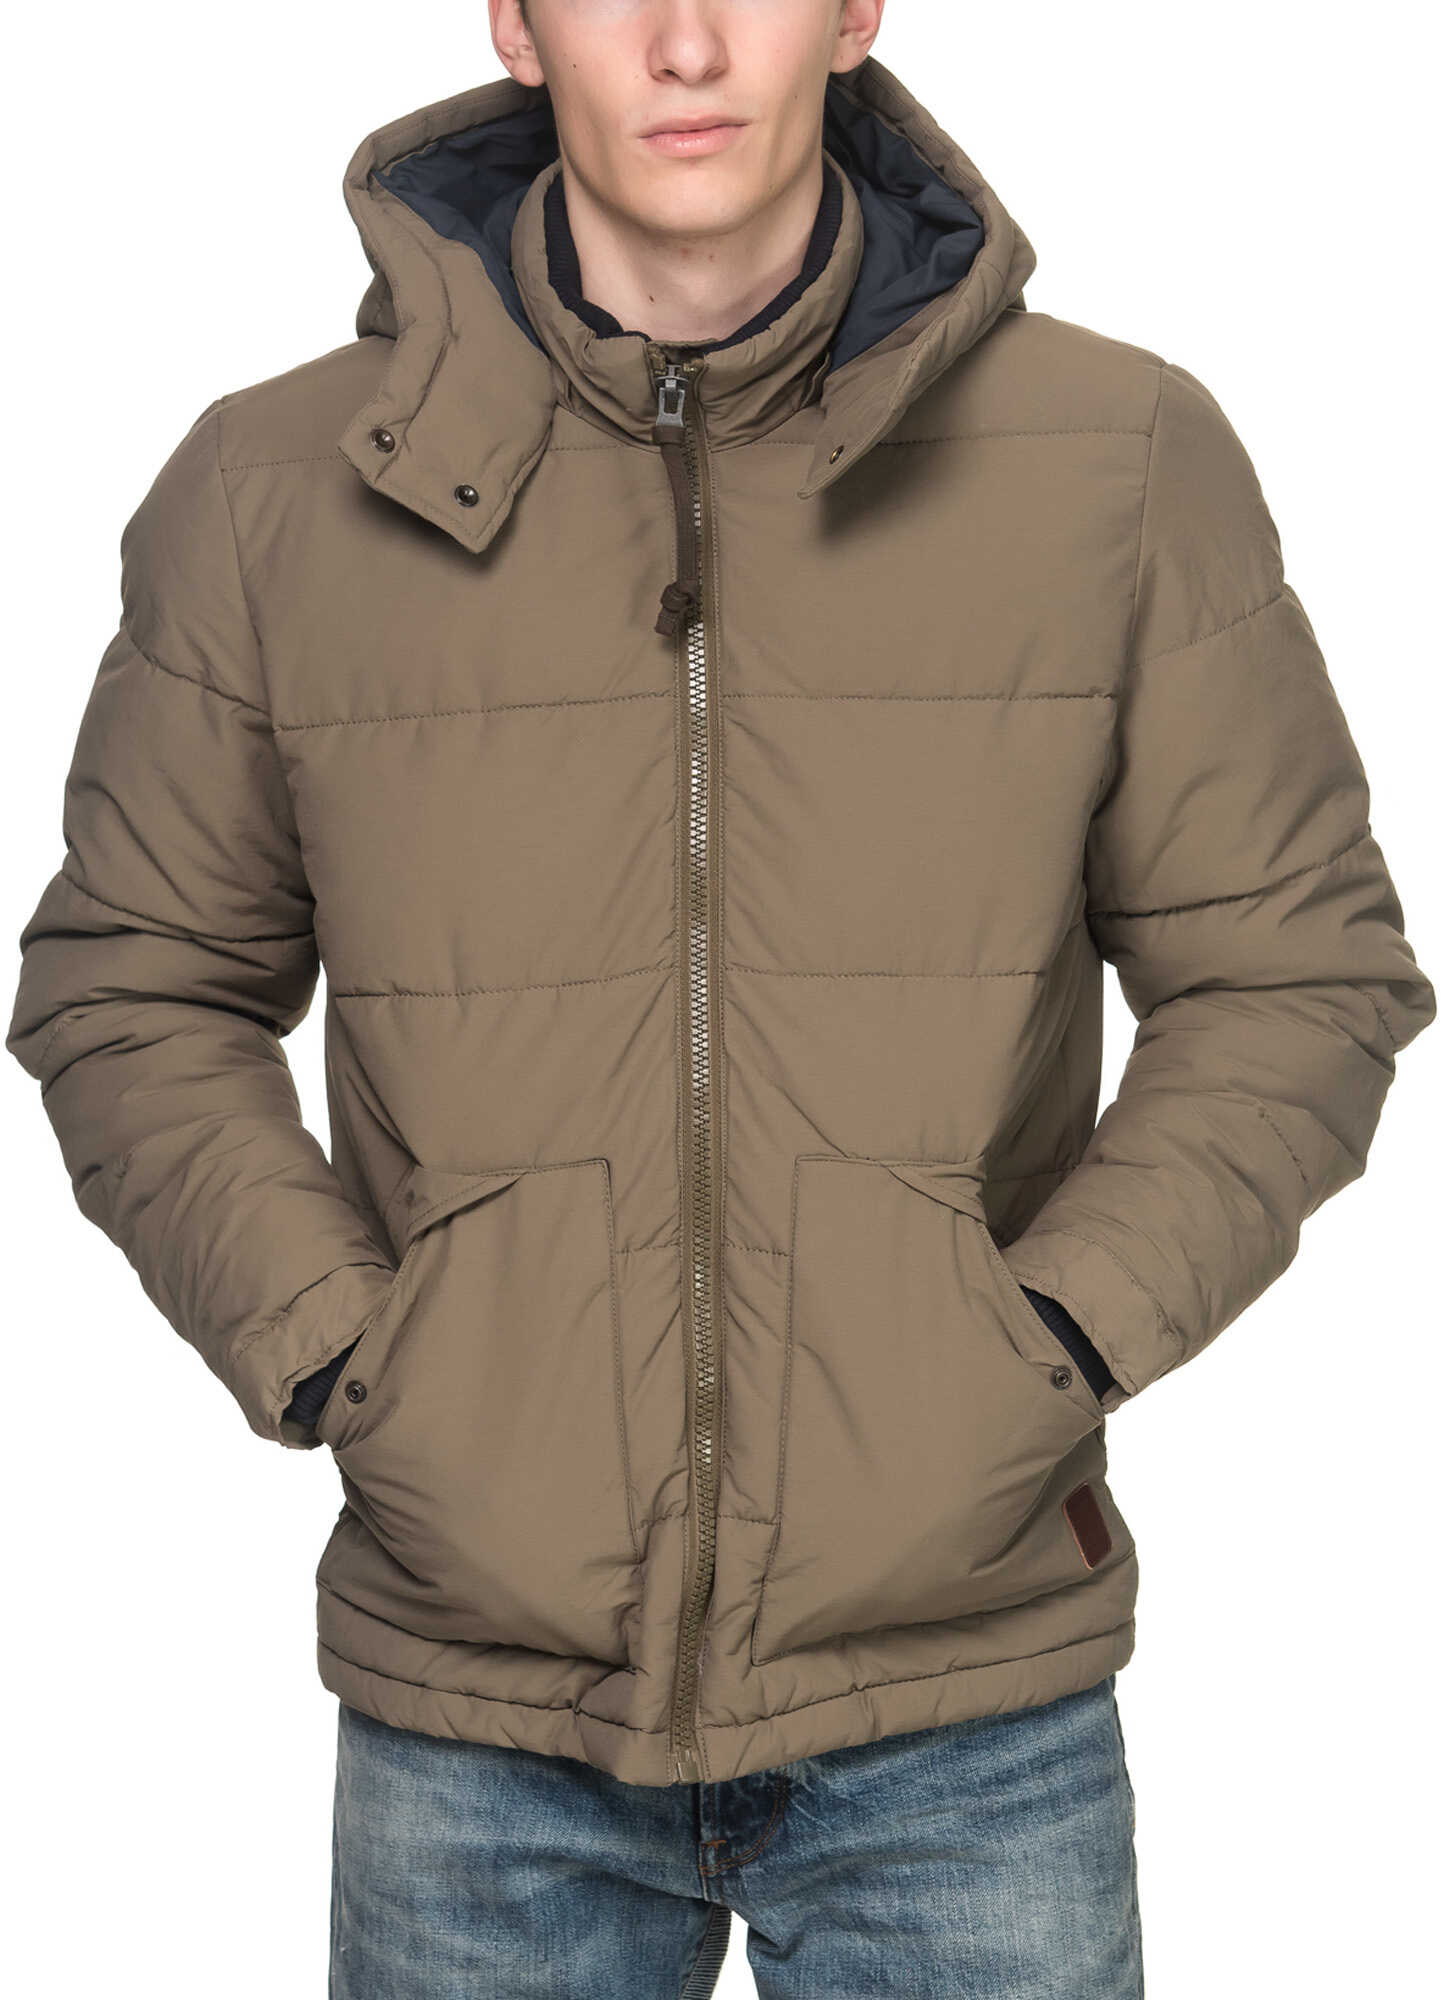 JACK & JONES Coast Puffer Men's Jacket In Beige Sea Turtle